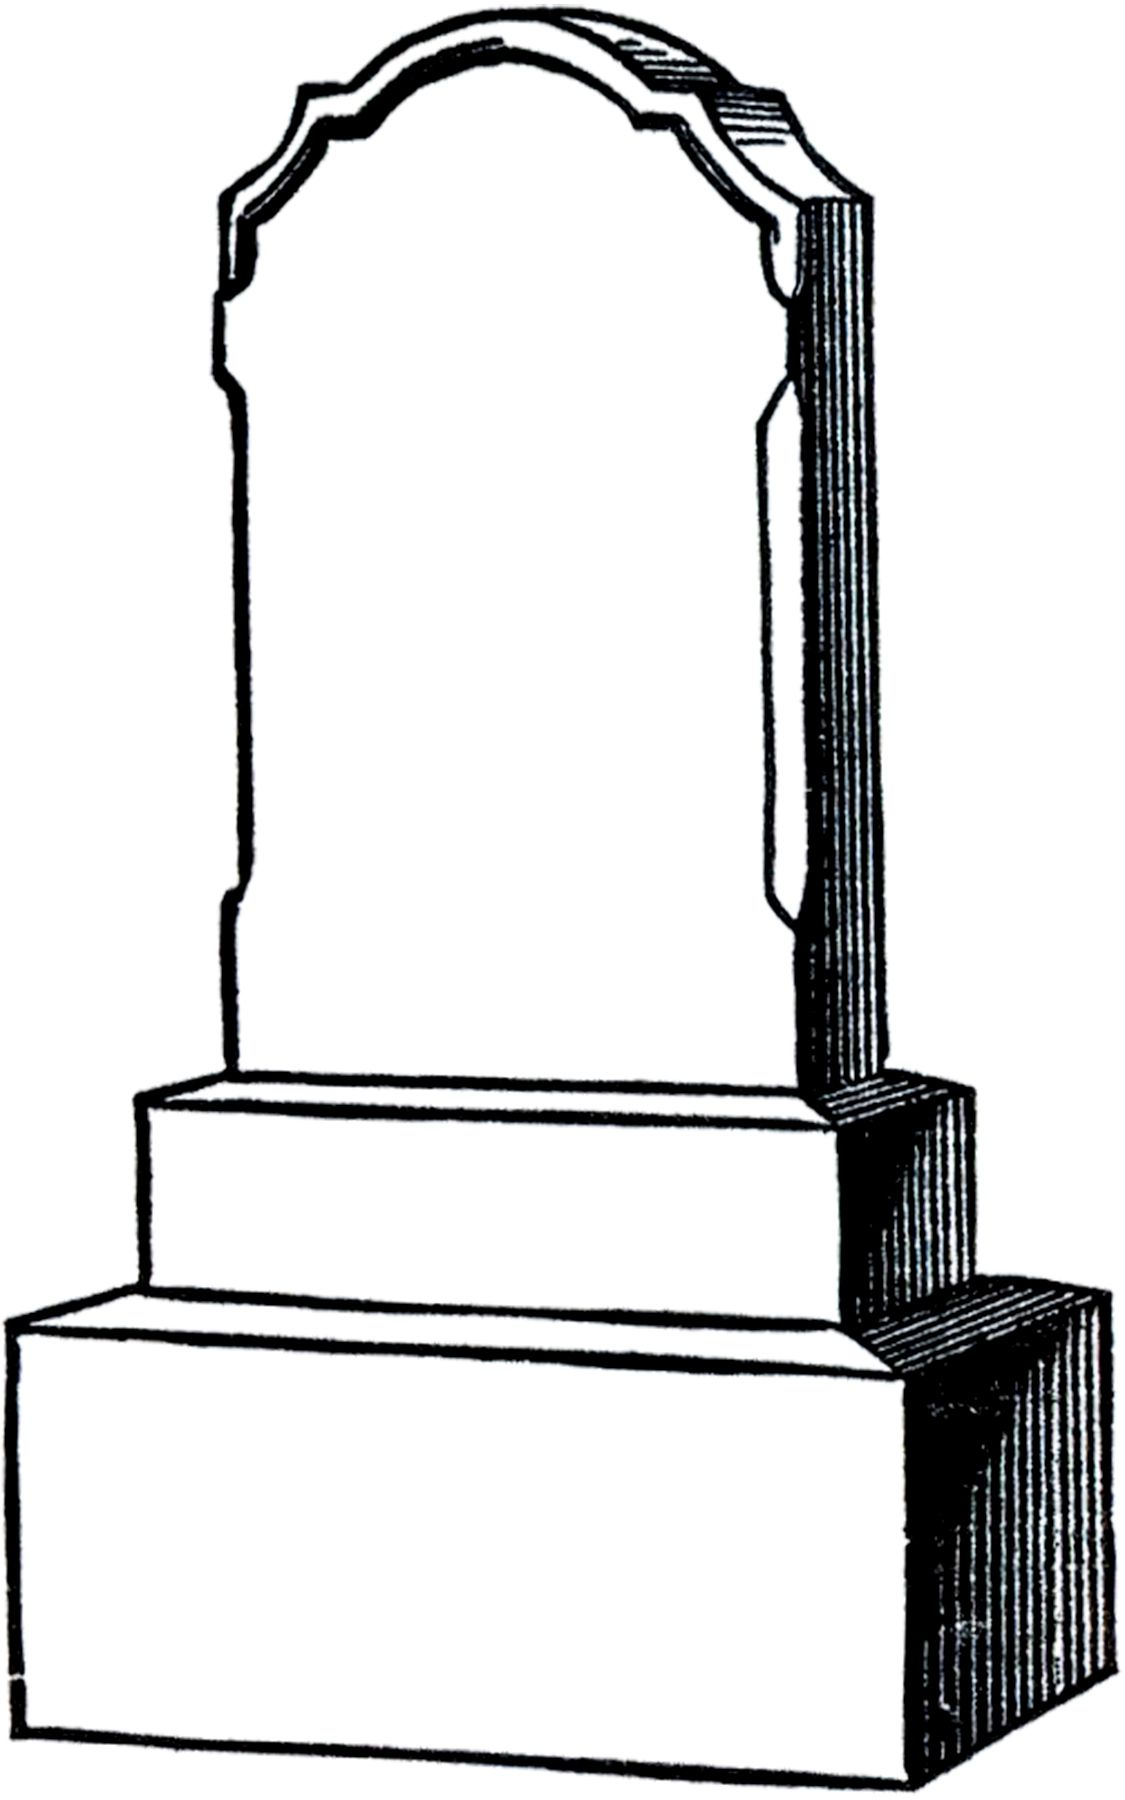 tombstone silhouette at getdrawings com free for personal use rh getdrawings com clipart tombstone clip art tombstones and epitaphs